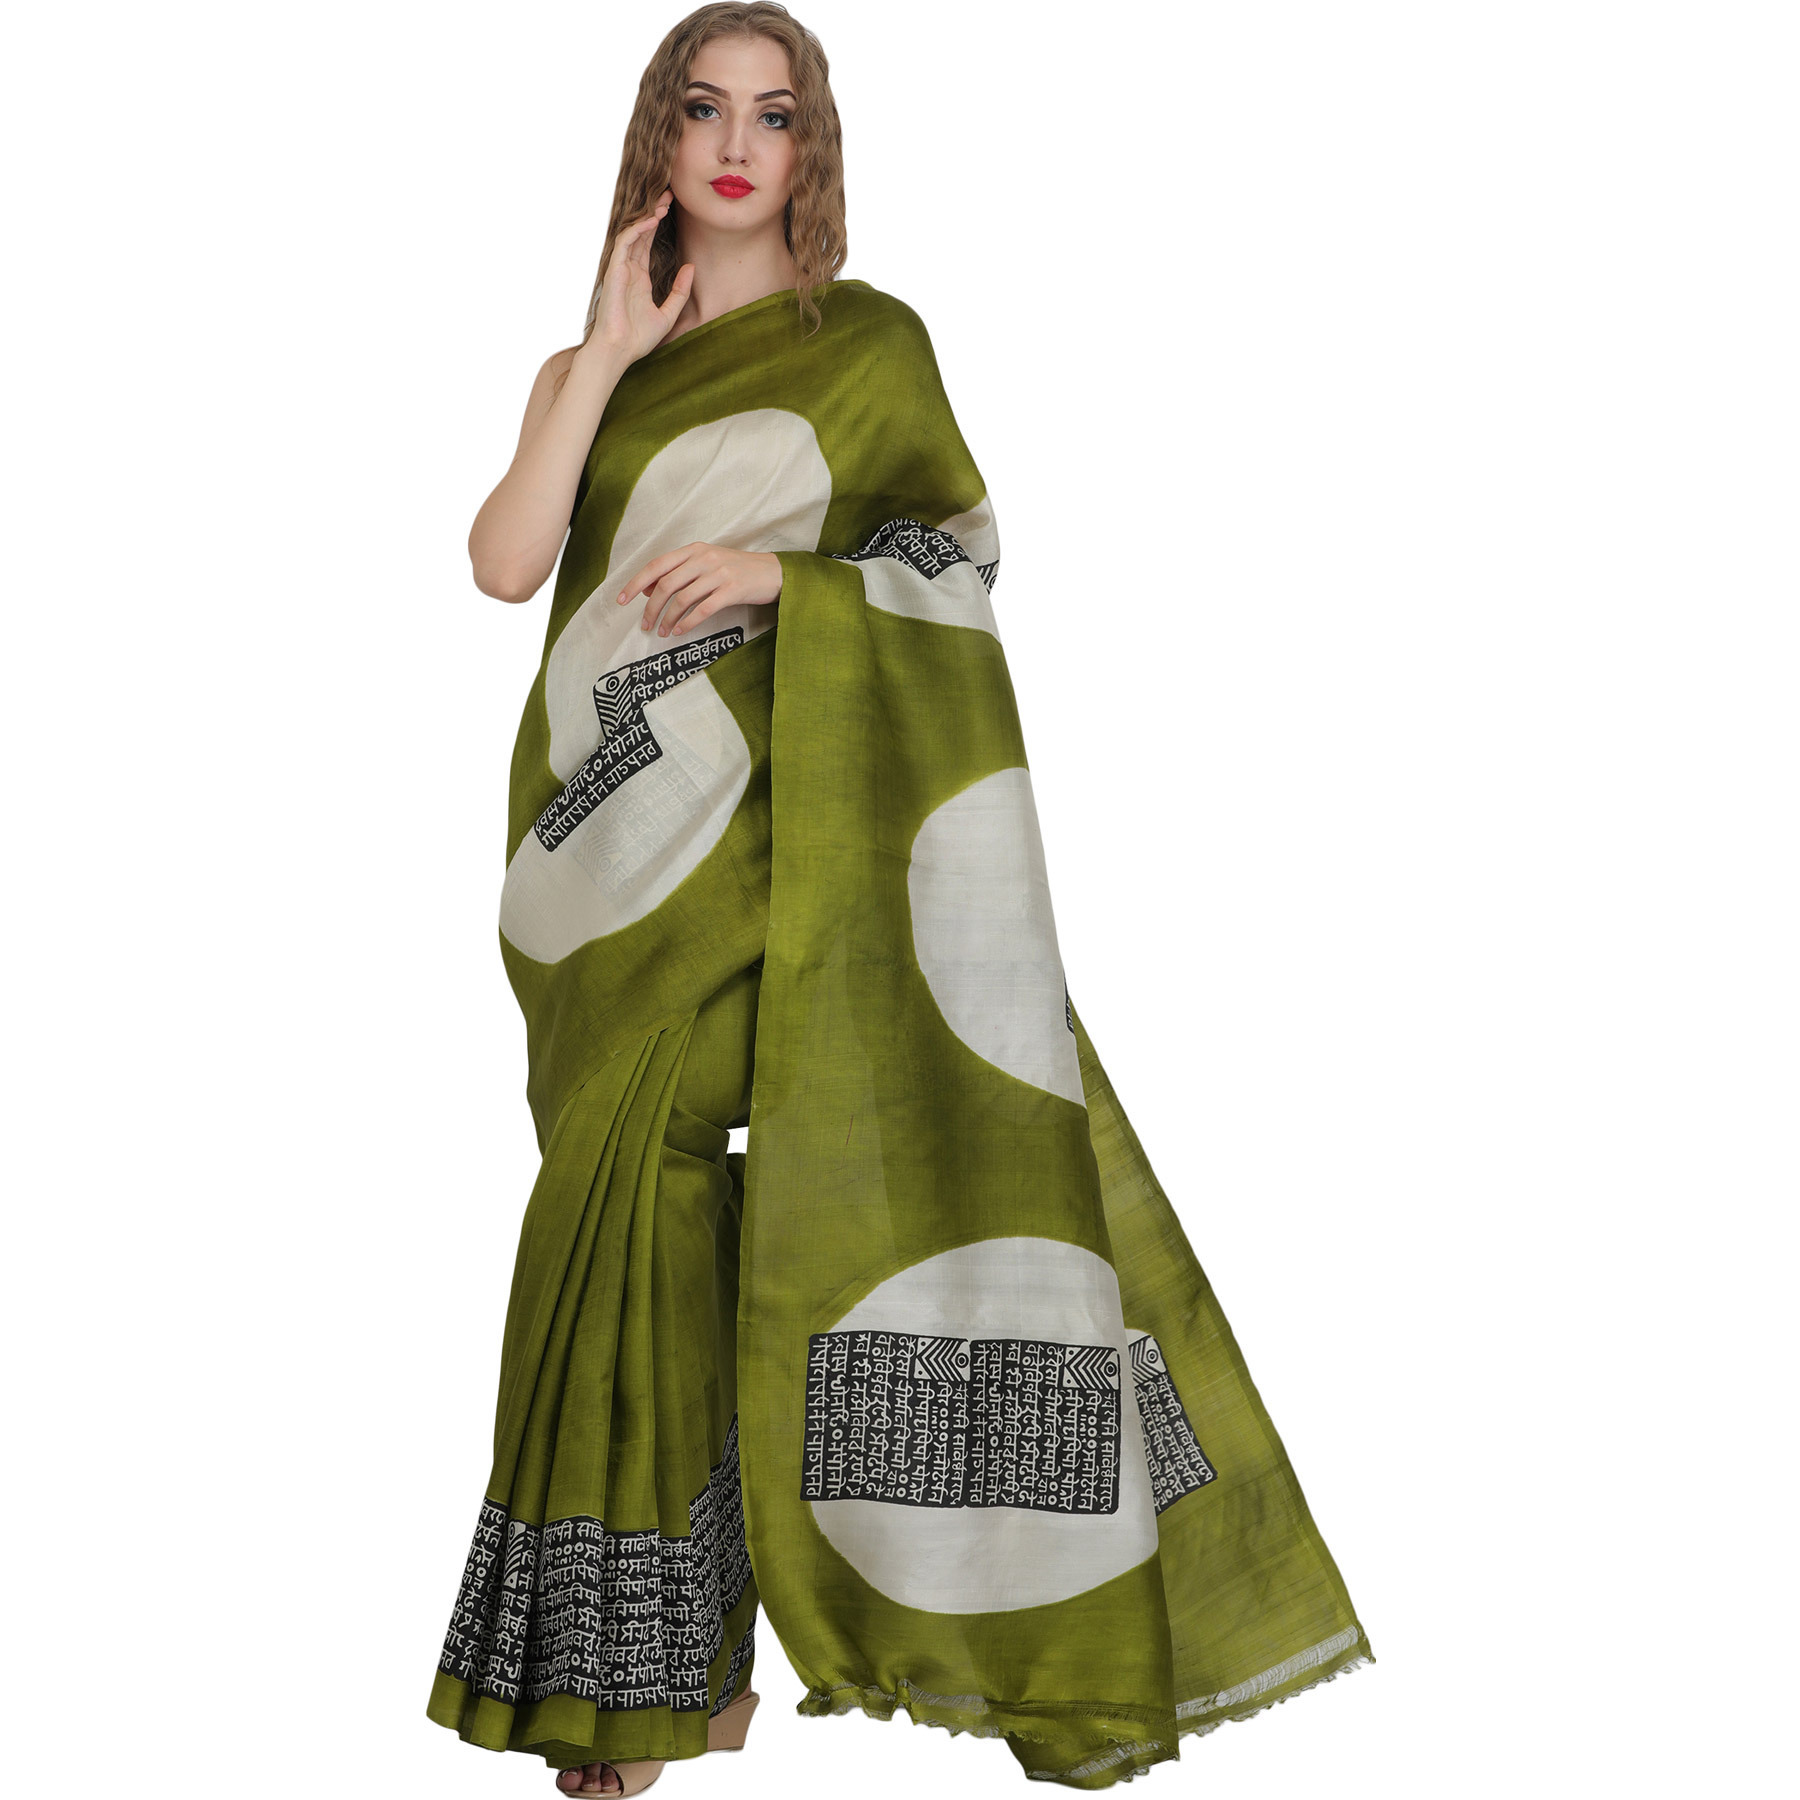 Cedar-Green Sari with Printed Sanatan Dharma Mantra